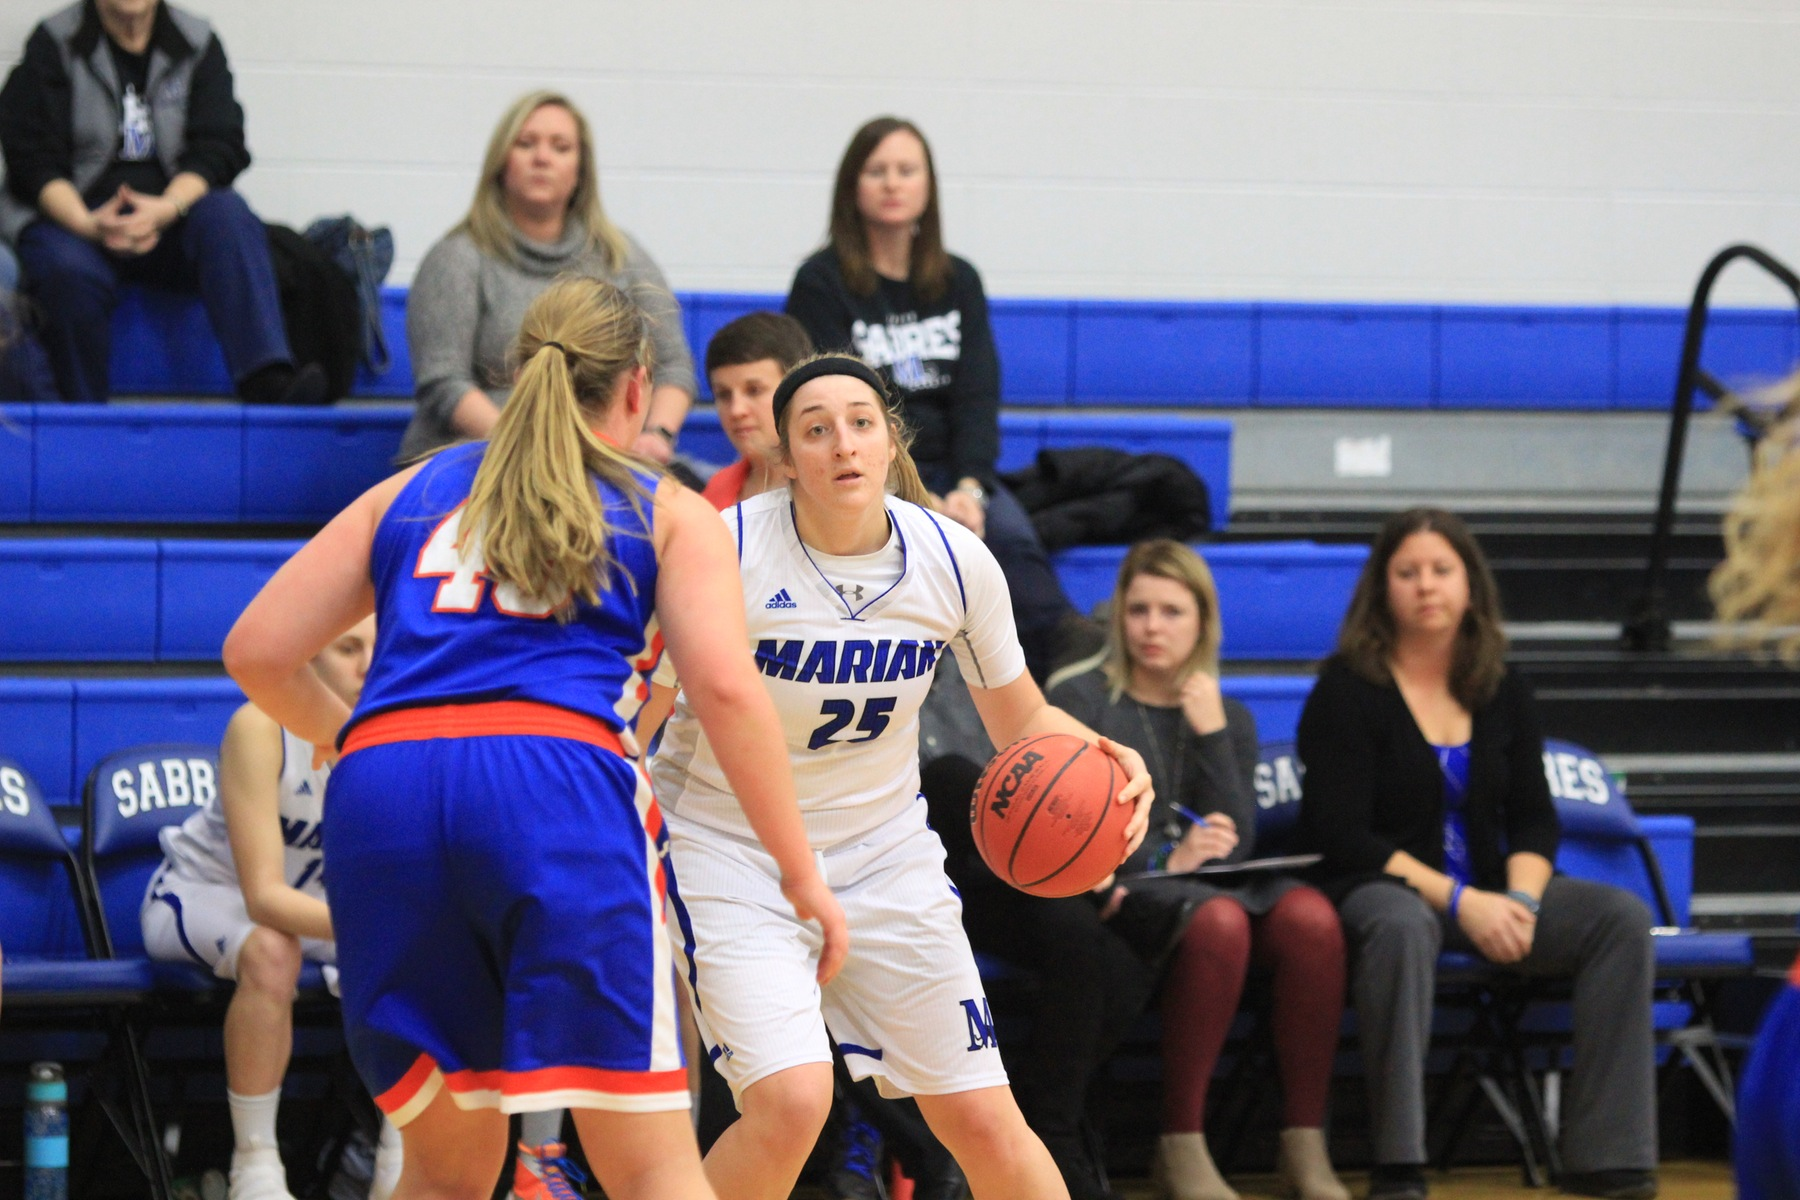 Lakeland pulls away from Sabre women's basketball